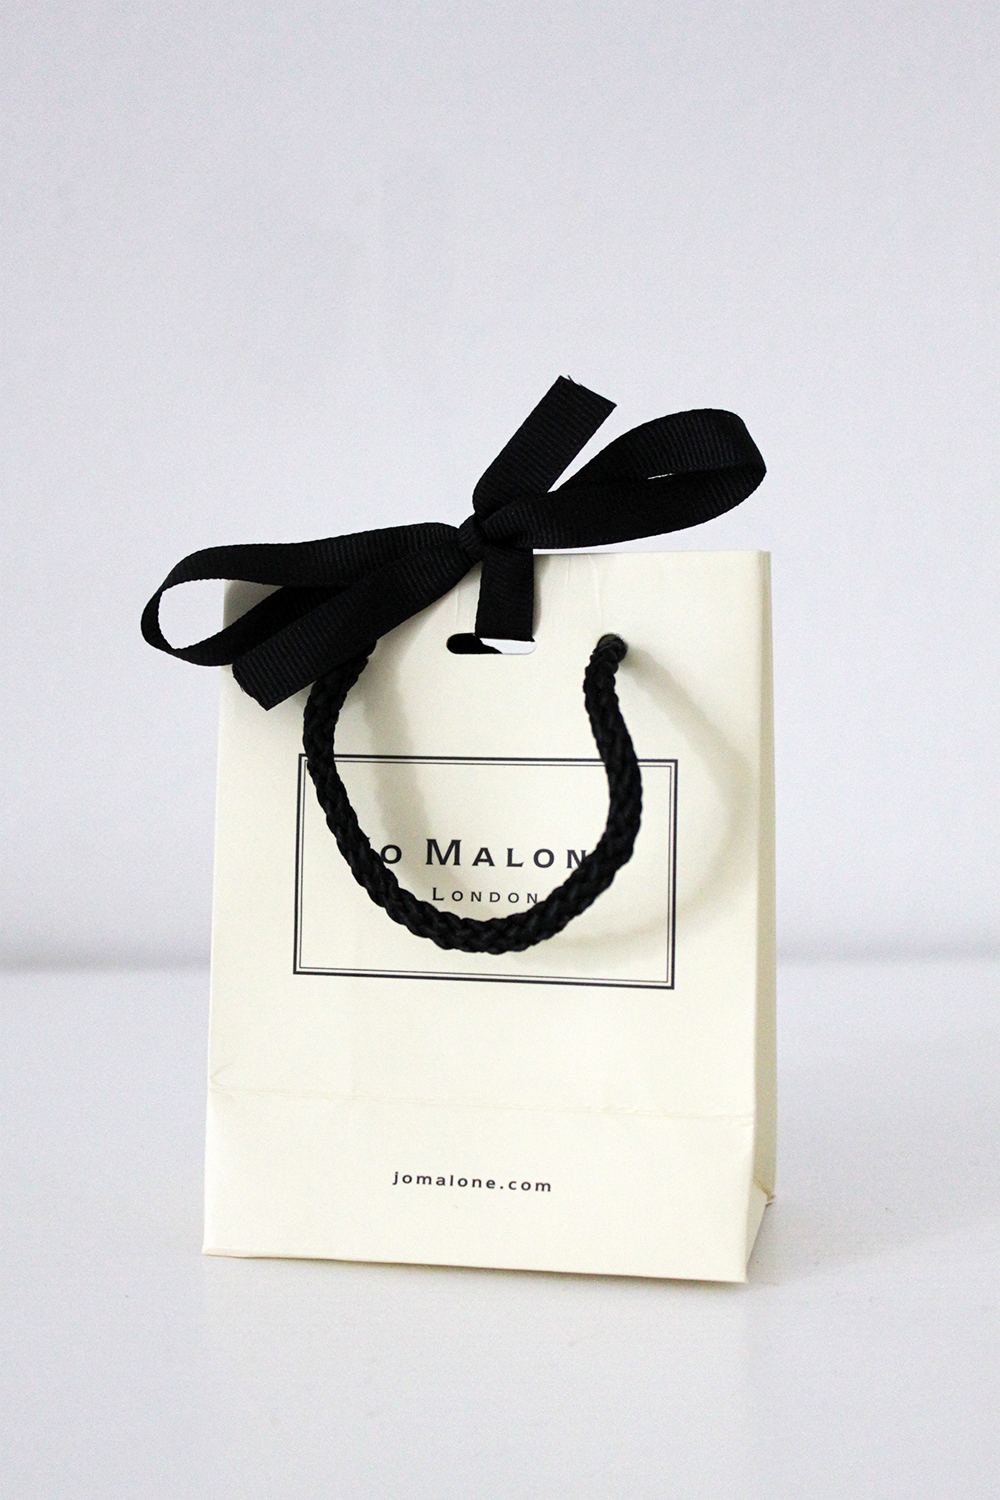 who is mocca, fashionblog tirol, beautyblog tirol, interiorblog tirol, jo malone, body creme grapefruit, parfuemgefluester